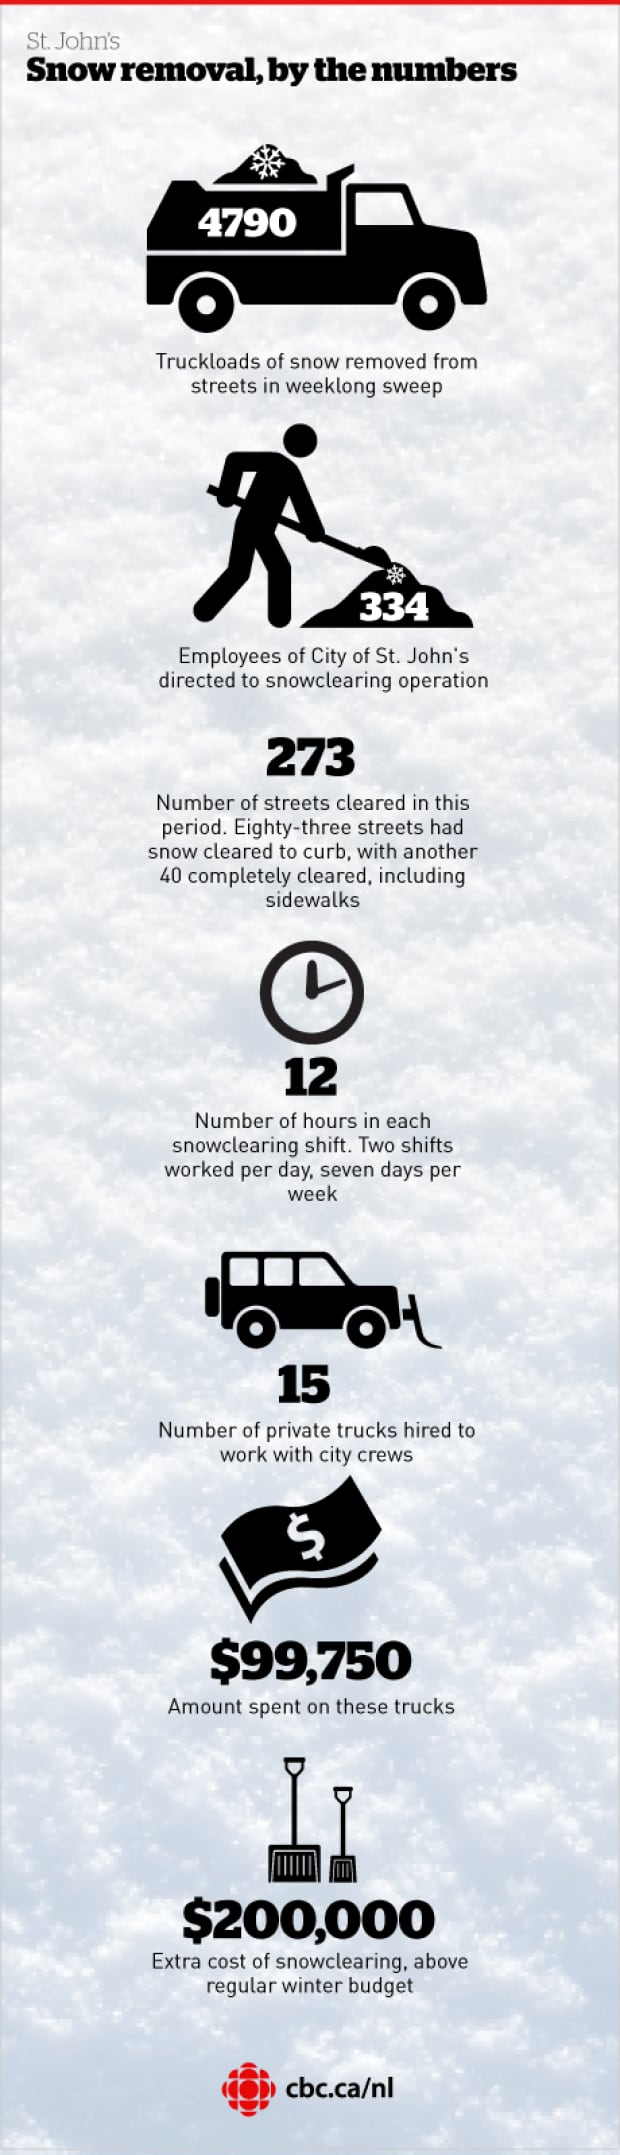 Snow removal, by the numbers